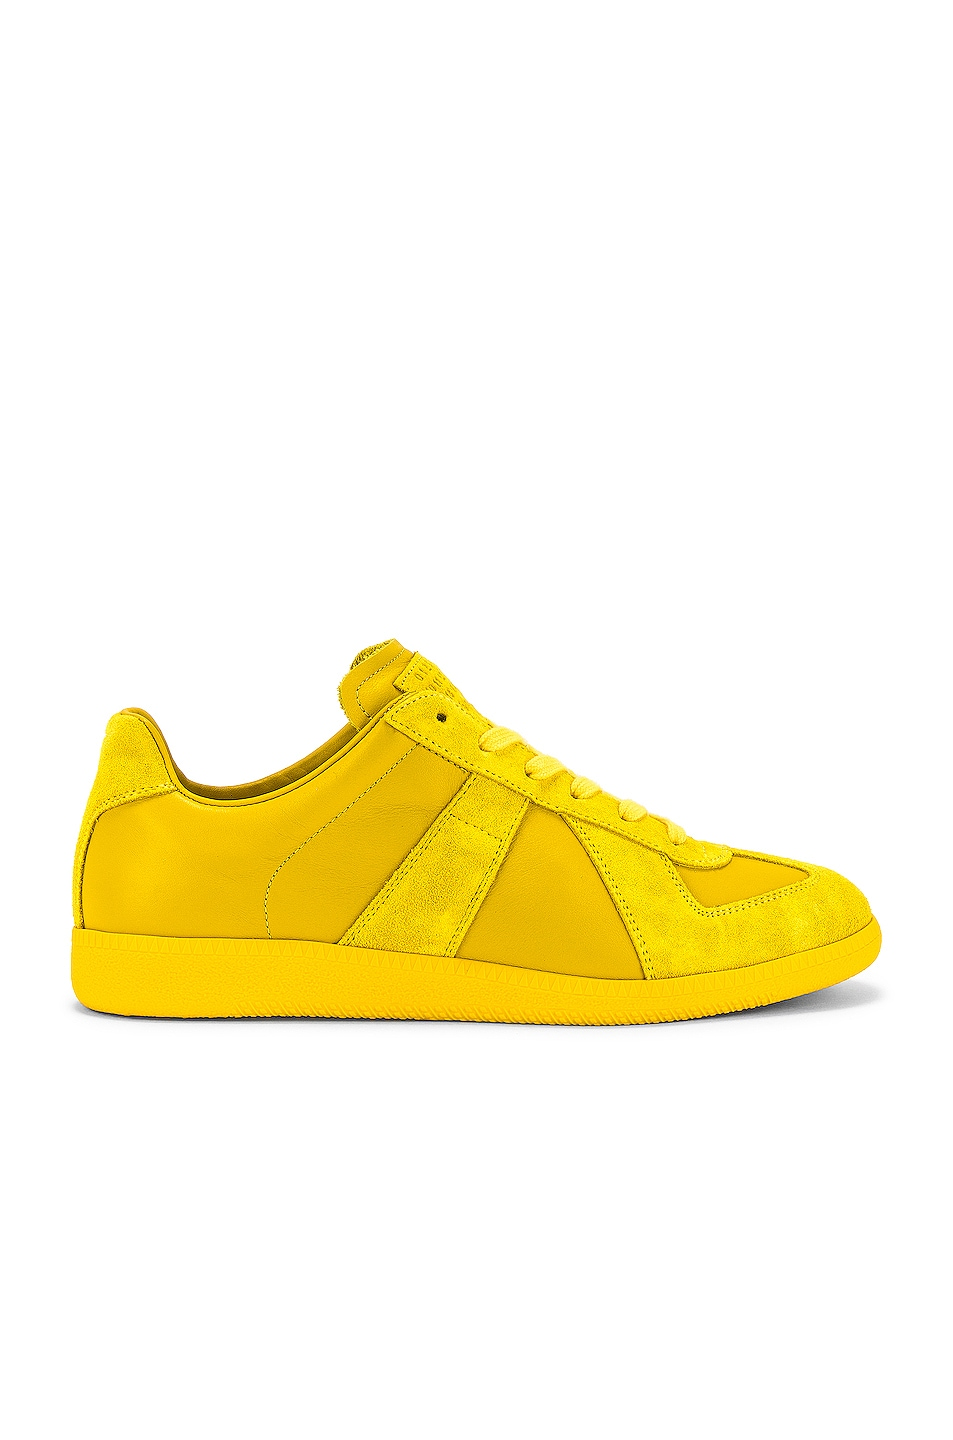 Image 1 of Maison Margiela Replica Sneakers in Canary